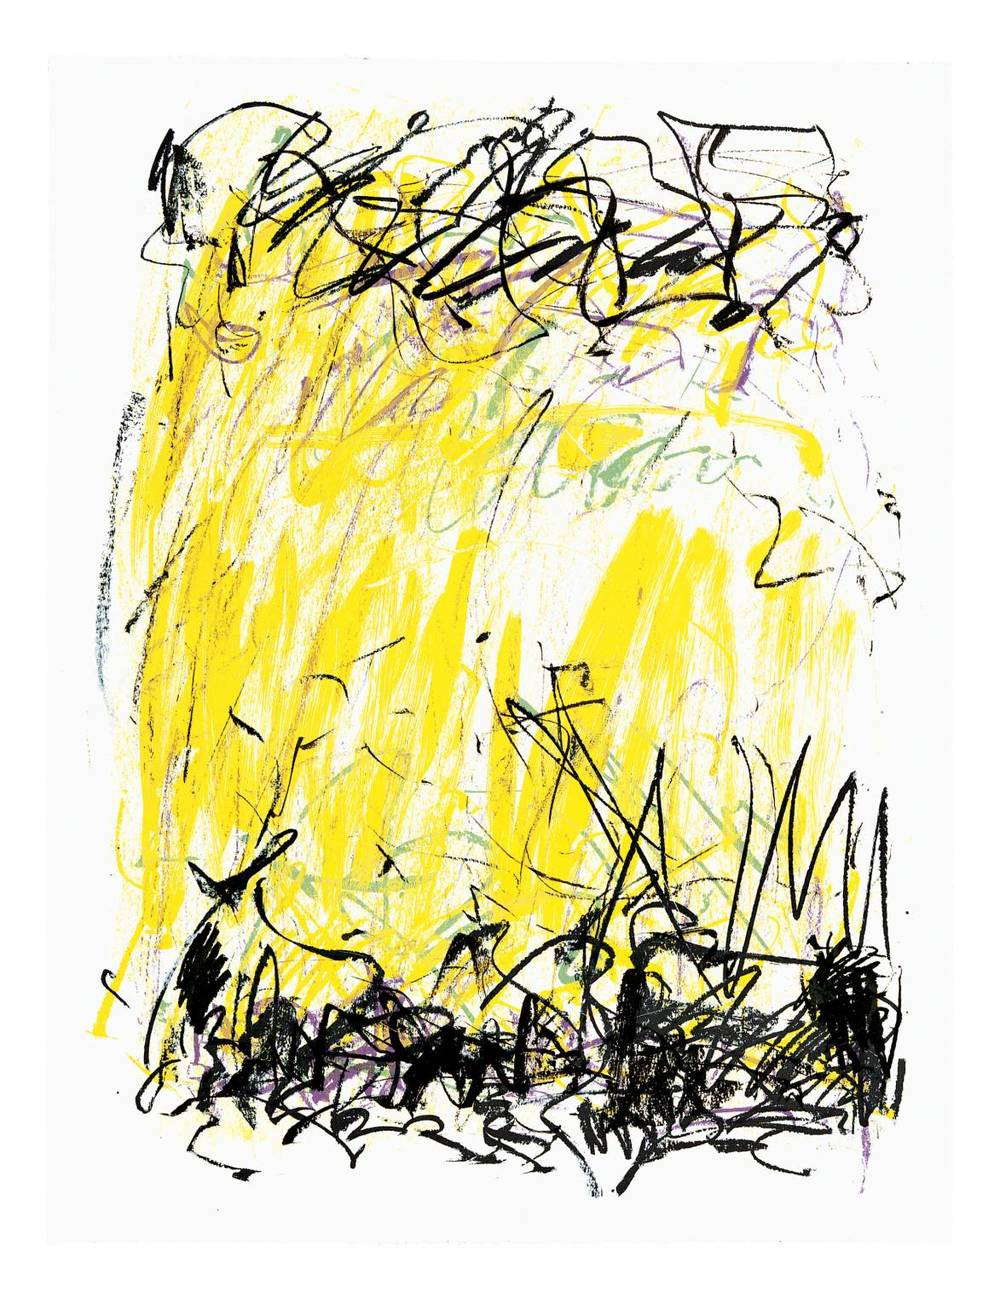 Sides of a River II, 1981 by Joan Mitchell